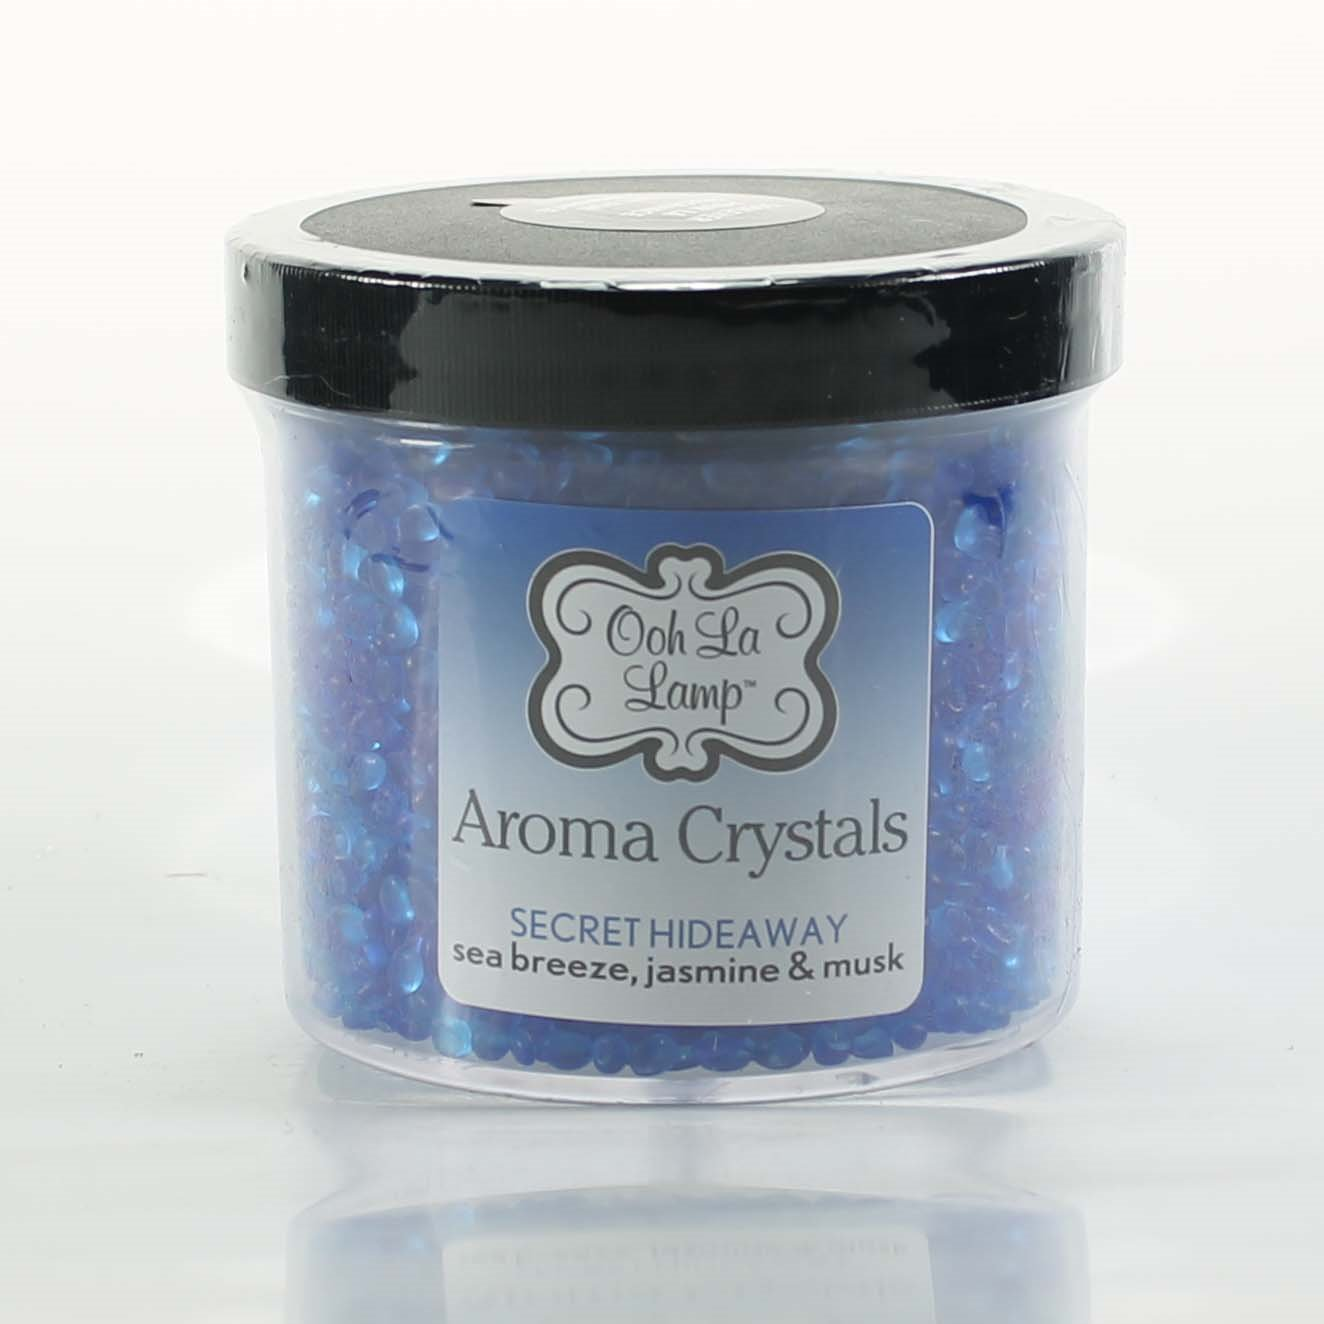 La Tee Da Ooh La Lamp Aroma Crystals Fragrance Secret Hideaway